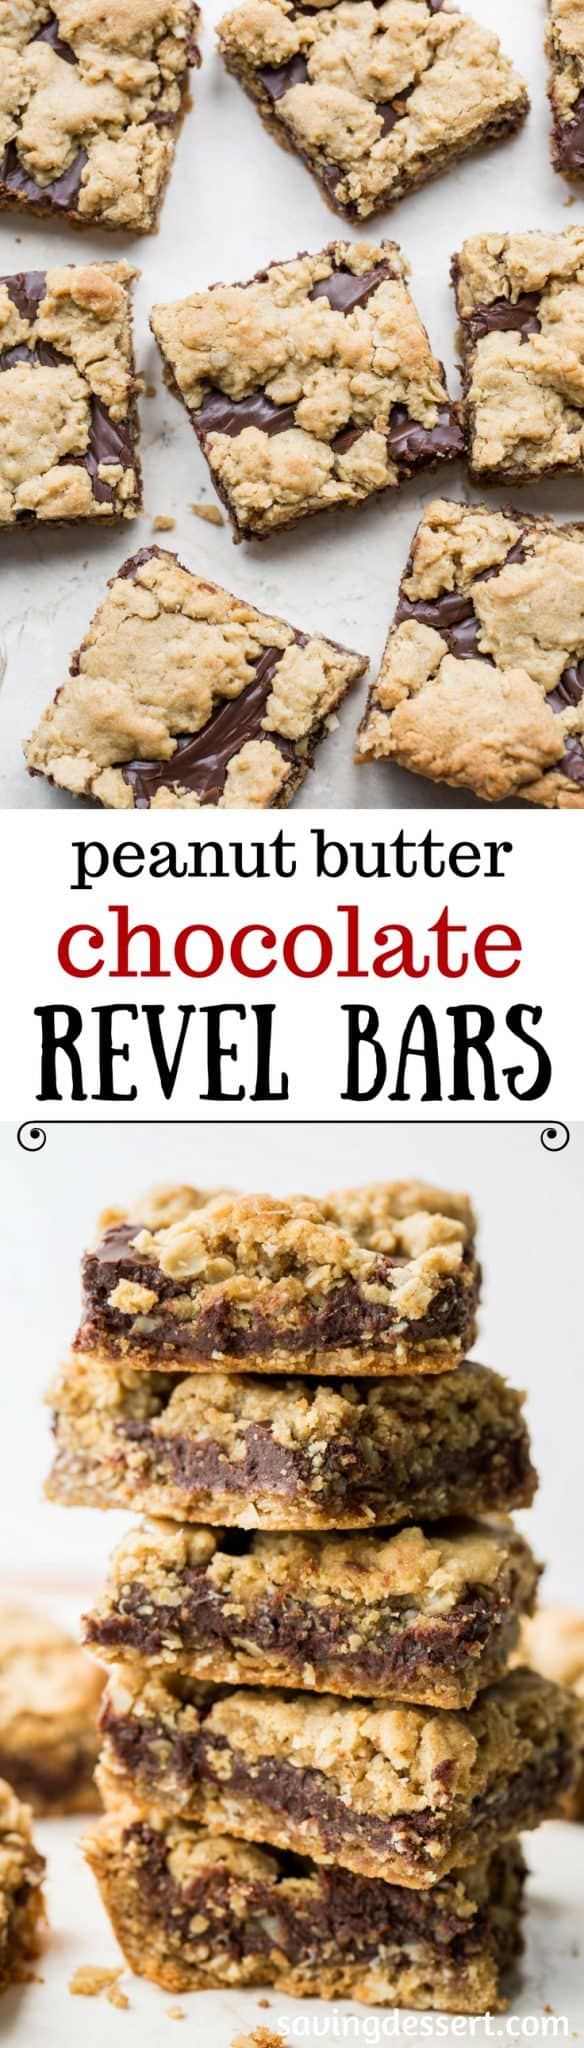 Chocolate Peanut Butter Revel Bars ~ delicious cookie bars loaded with oats, are easy to make, travel well and taste delicious! www.savingdessert.com